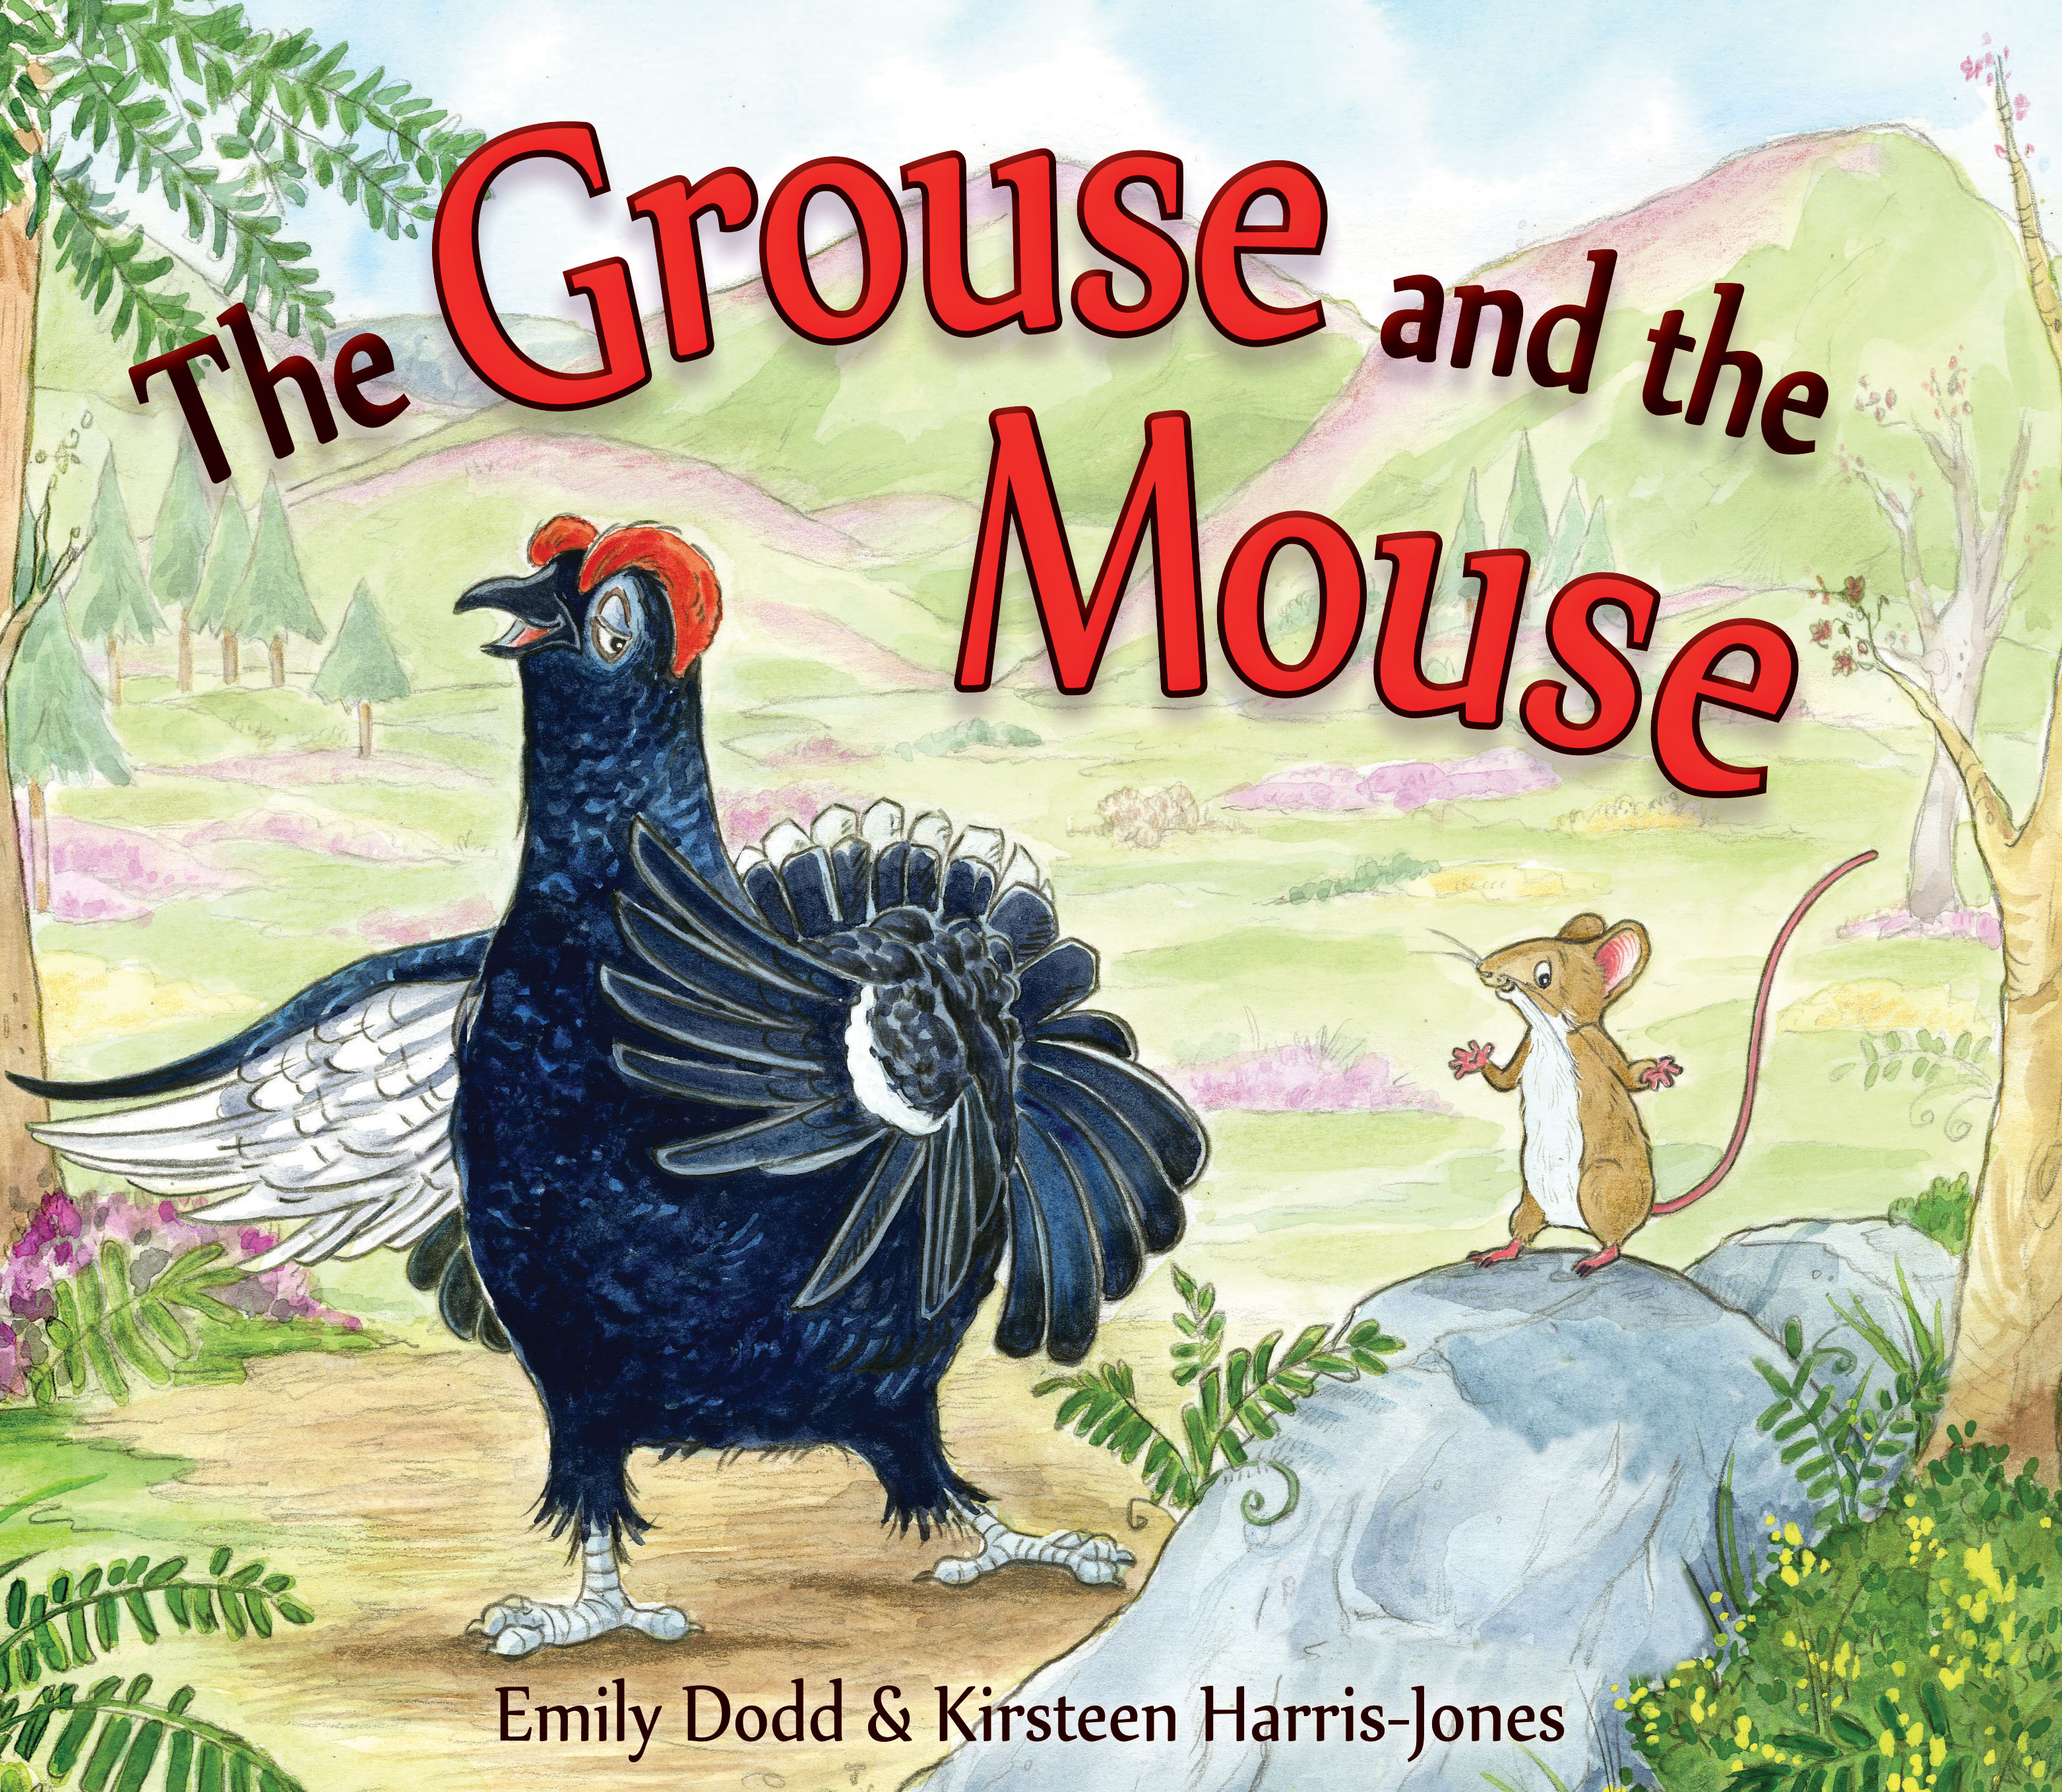 Grouse-and-the-Mouse